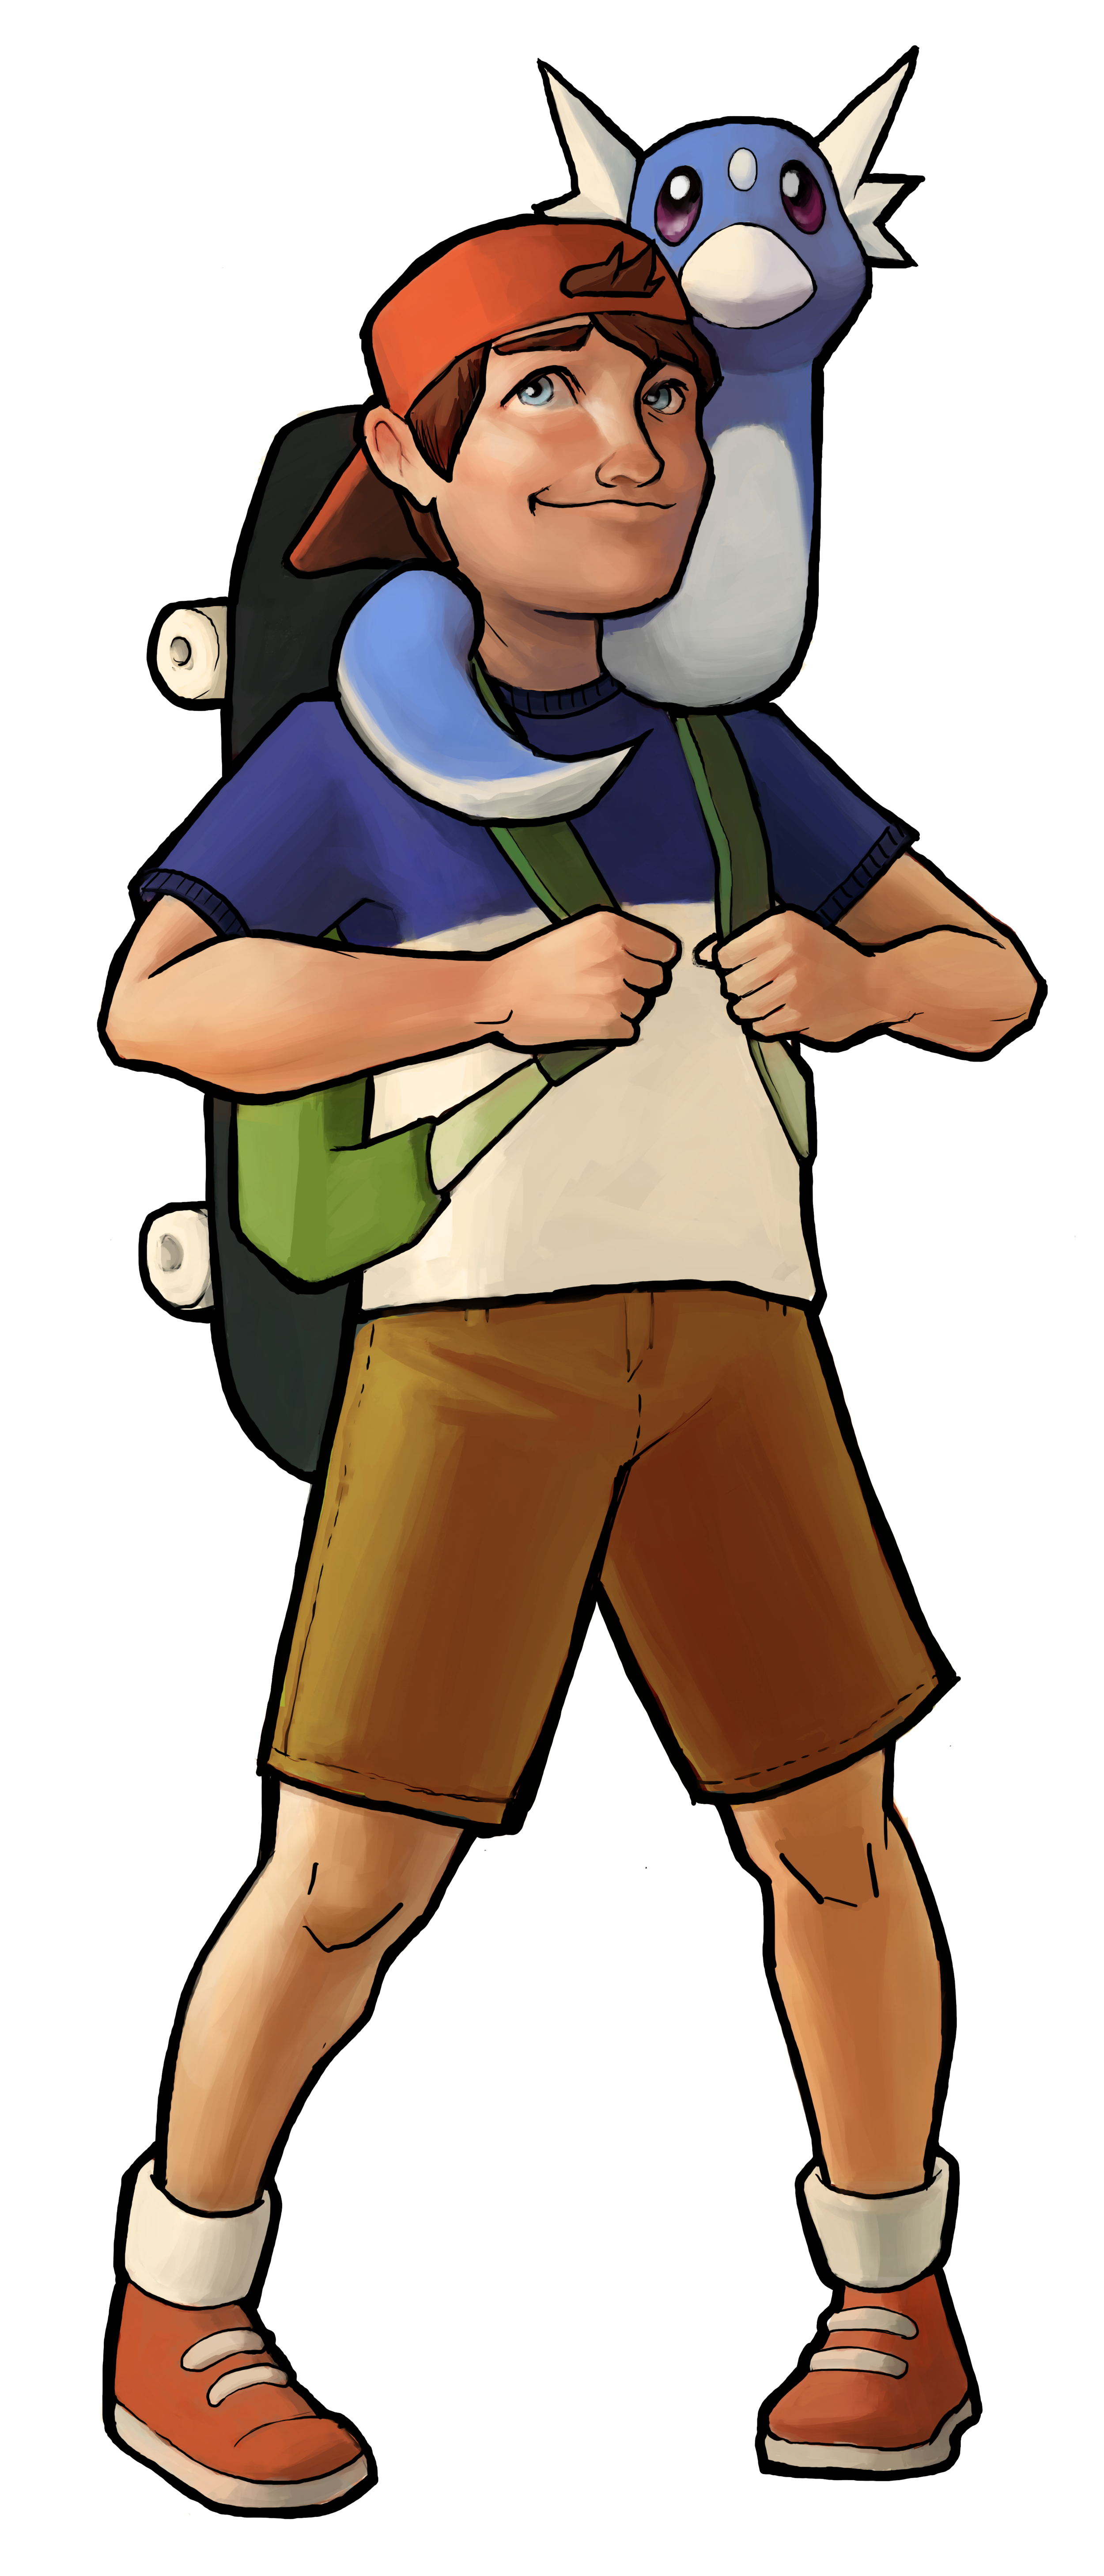 Skip has a backwards hat, a blue t-shirt, khaki shorts, and a skateboard backpack. Dratini is wrapped around his neck.